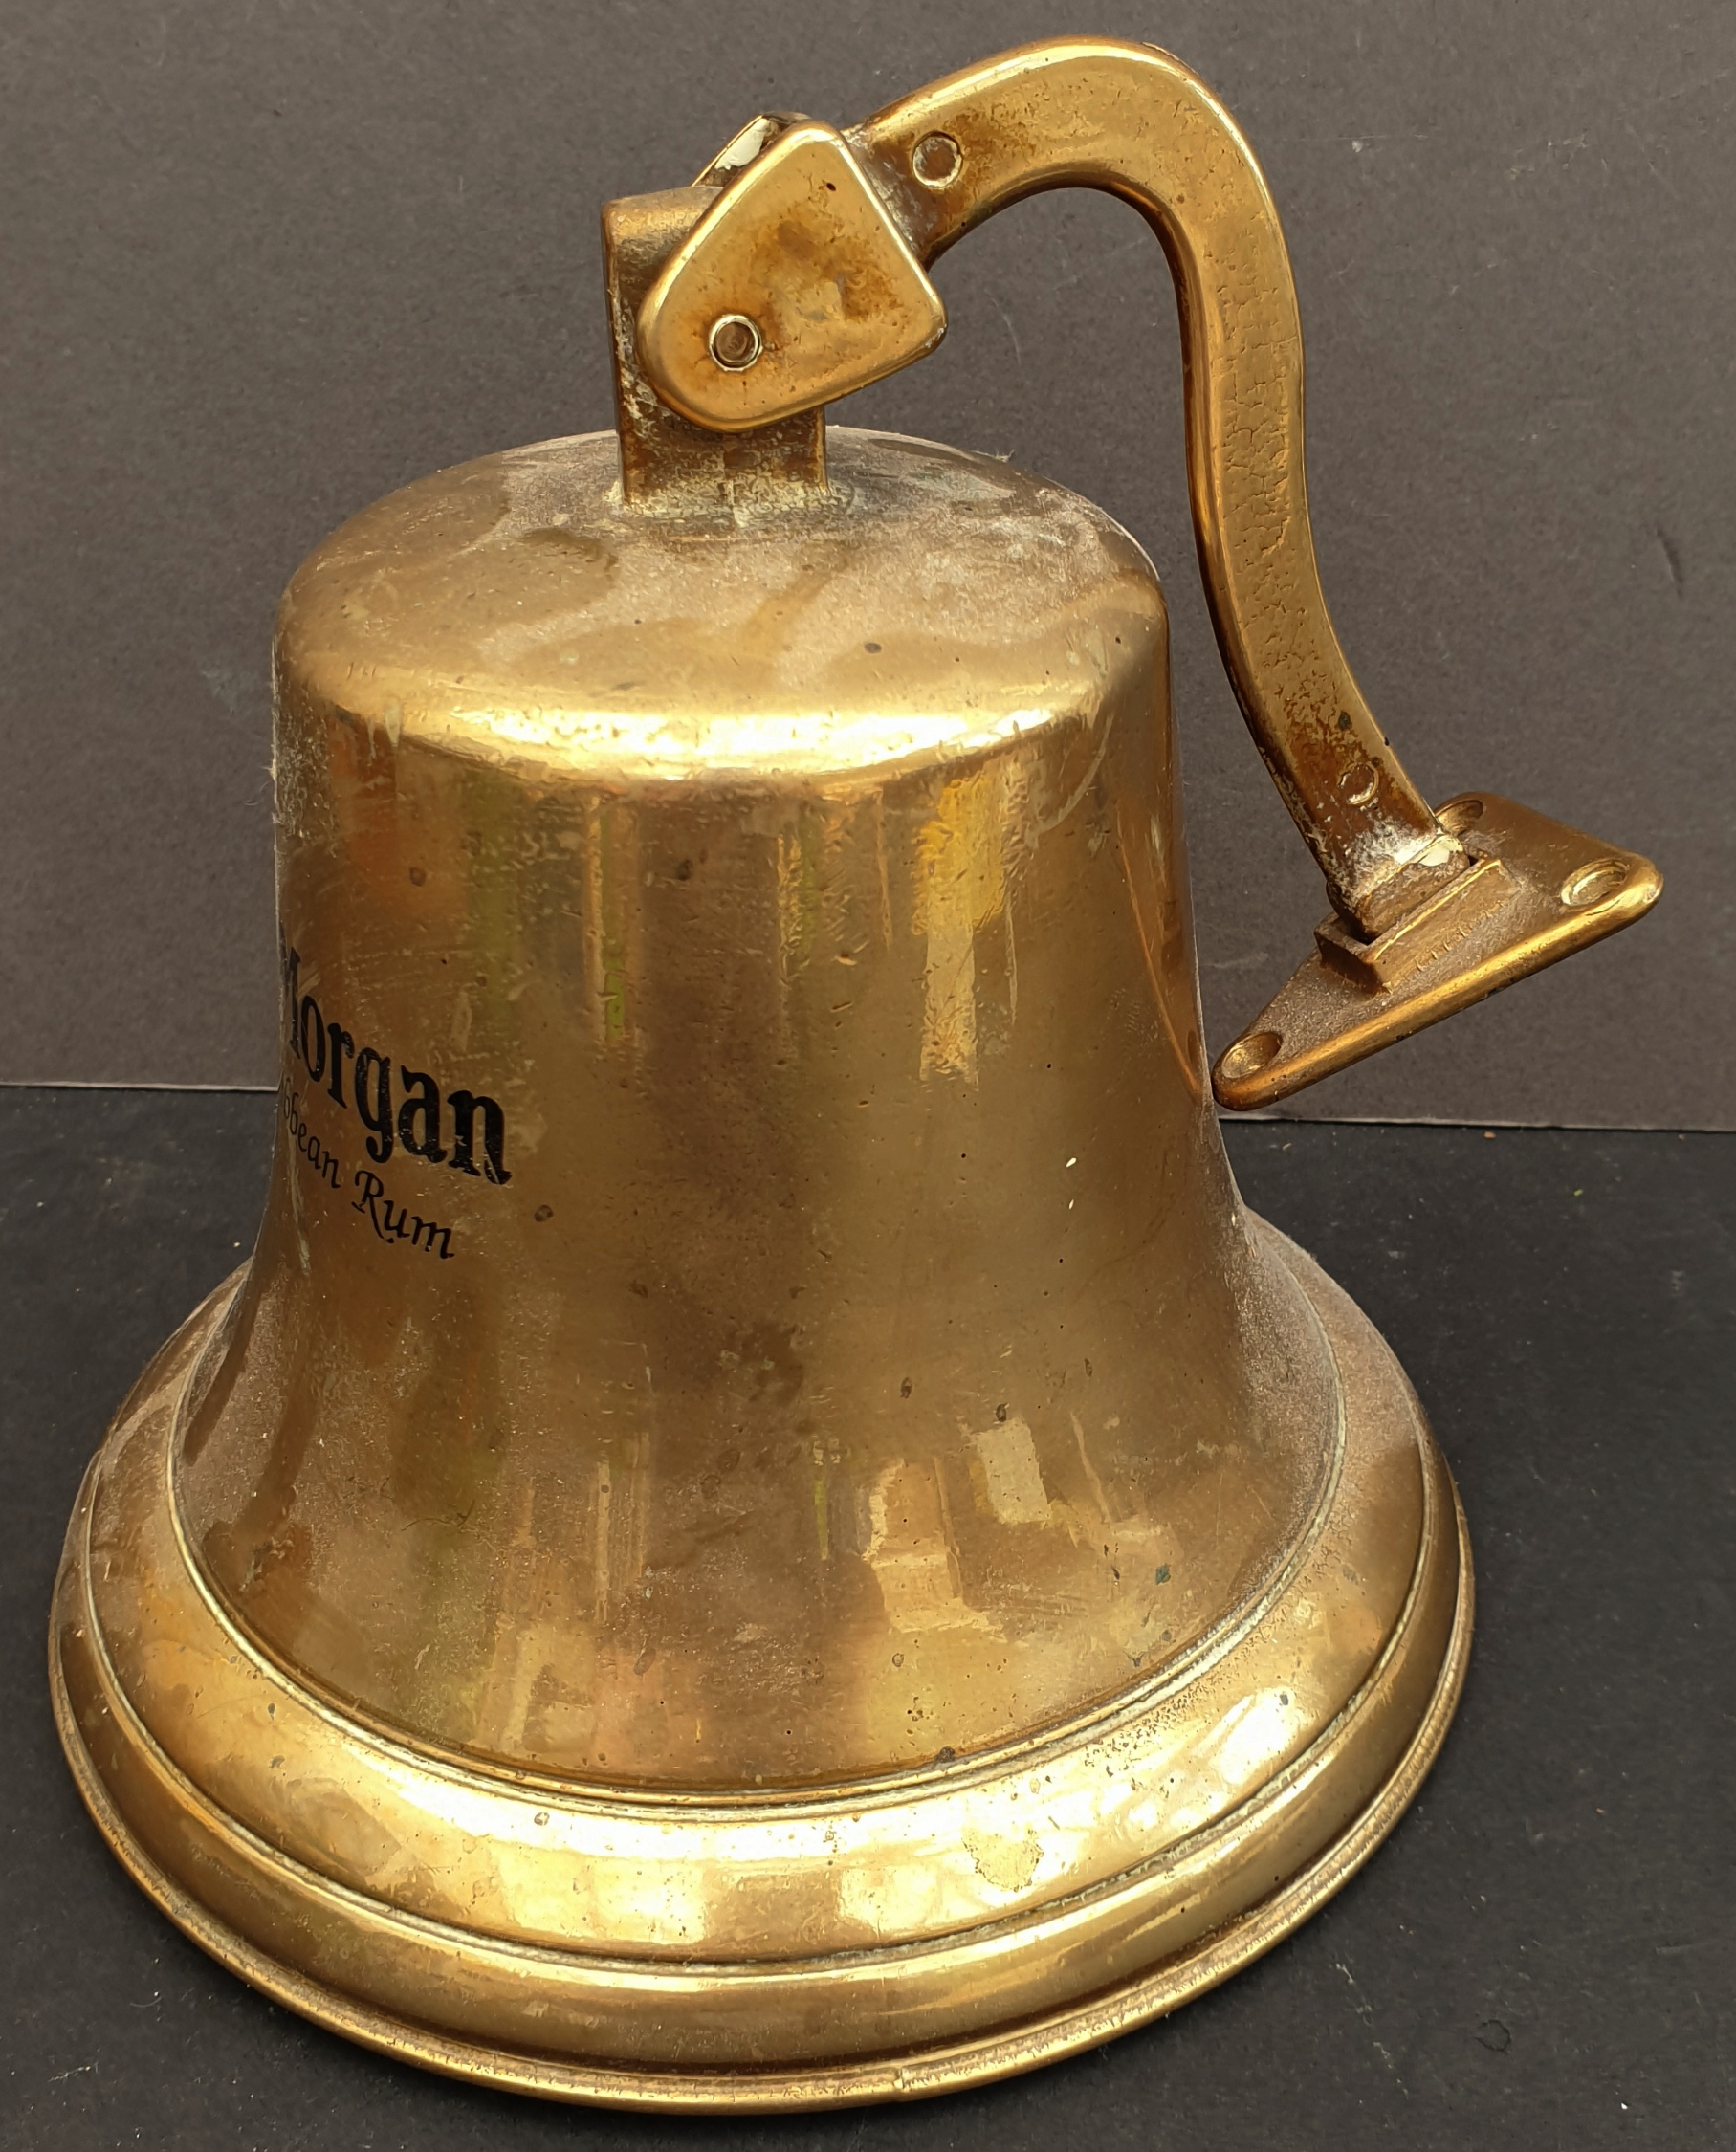 Vintage Captain Morgan's Rum Brass Ship's Bell - Image 2 of 3